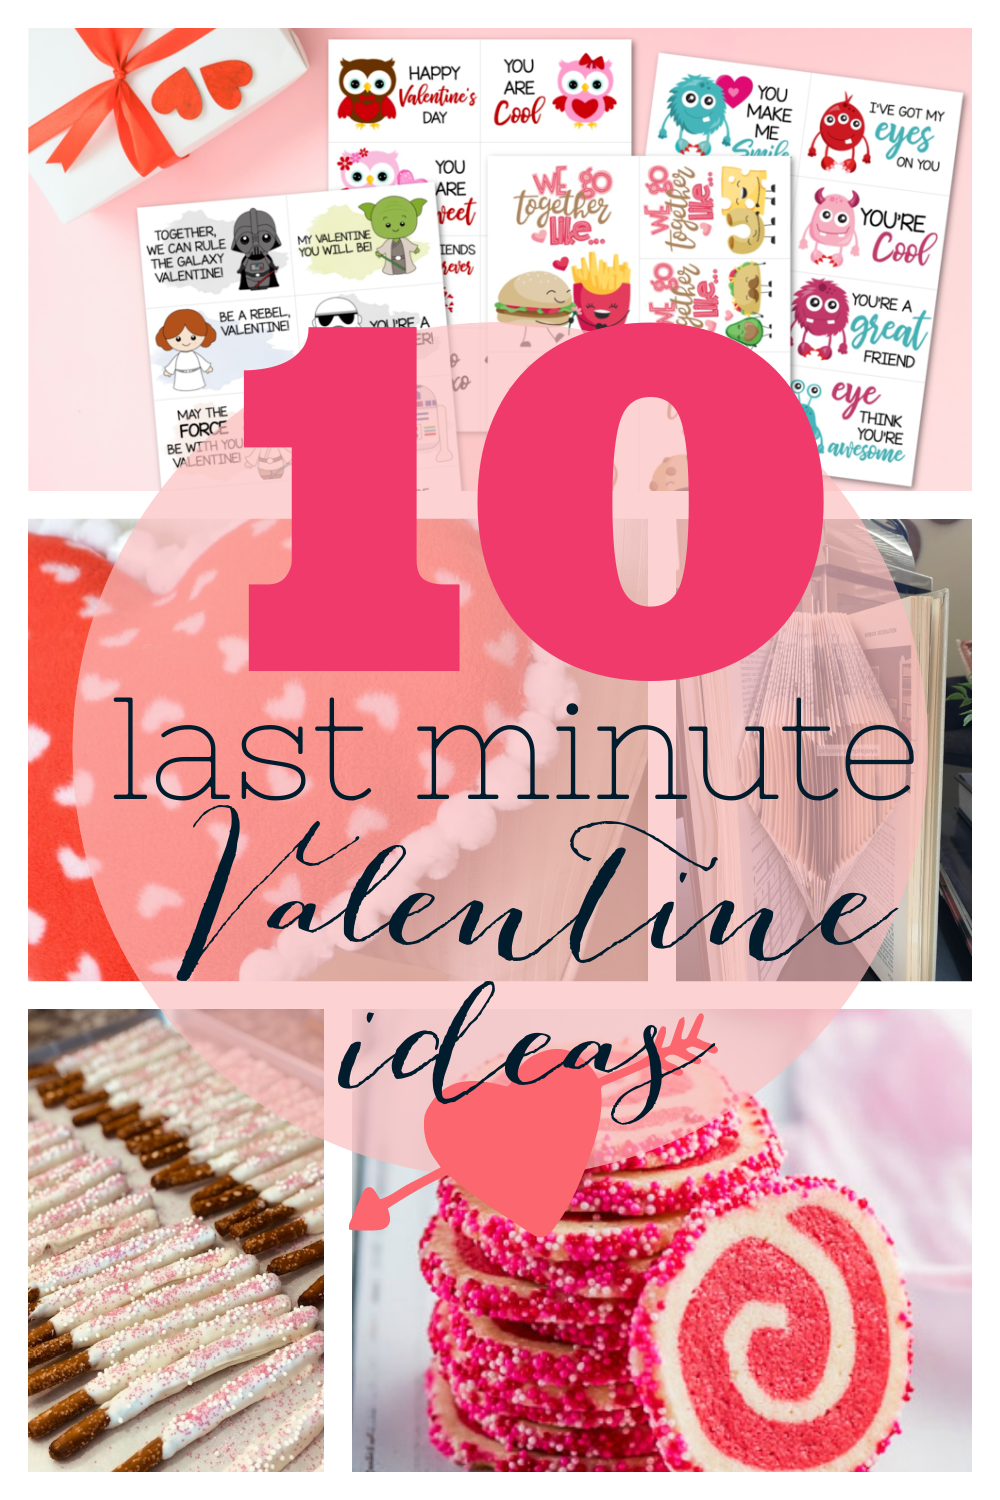 10 Last Minute Valentine Ideas at GingerSnapCrafts.com #valentines #hearts #crafts.png